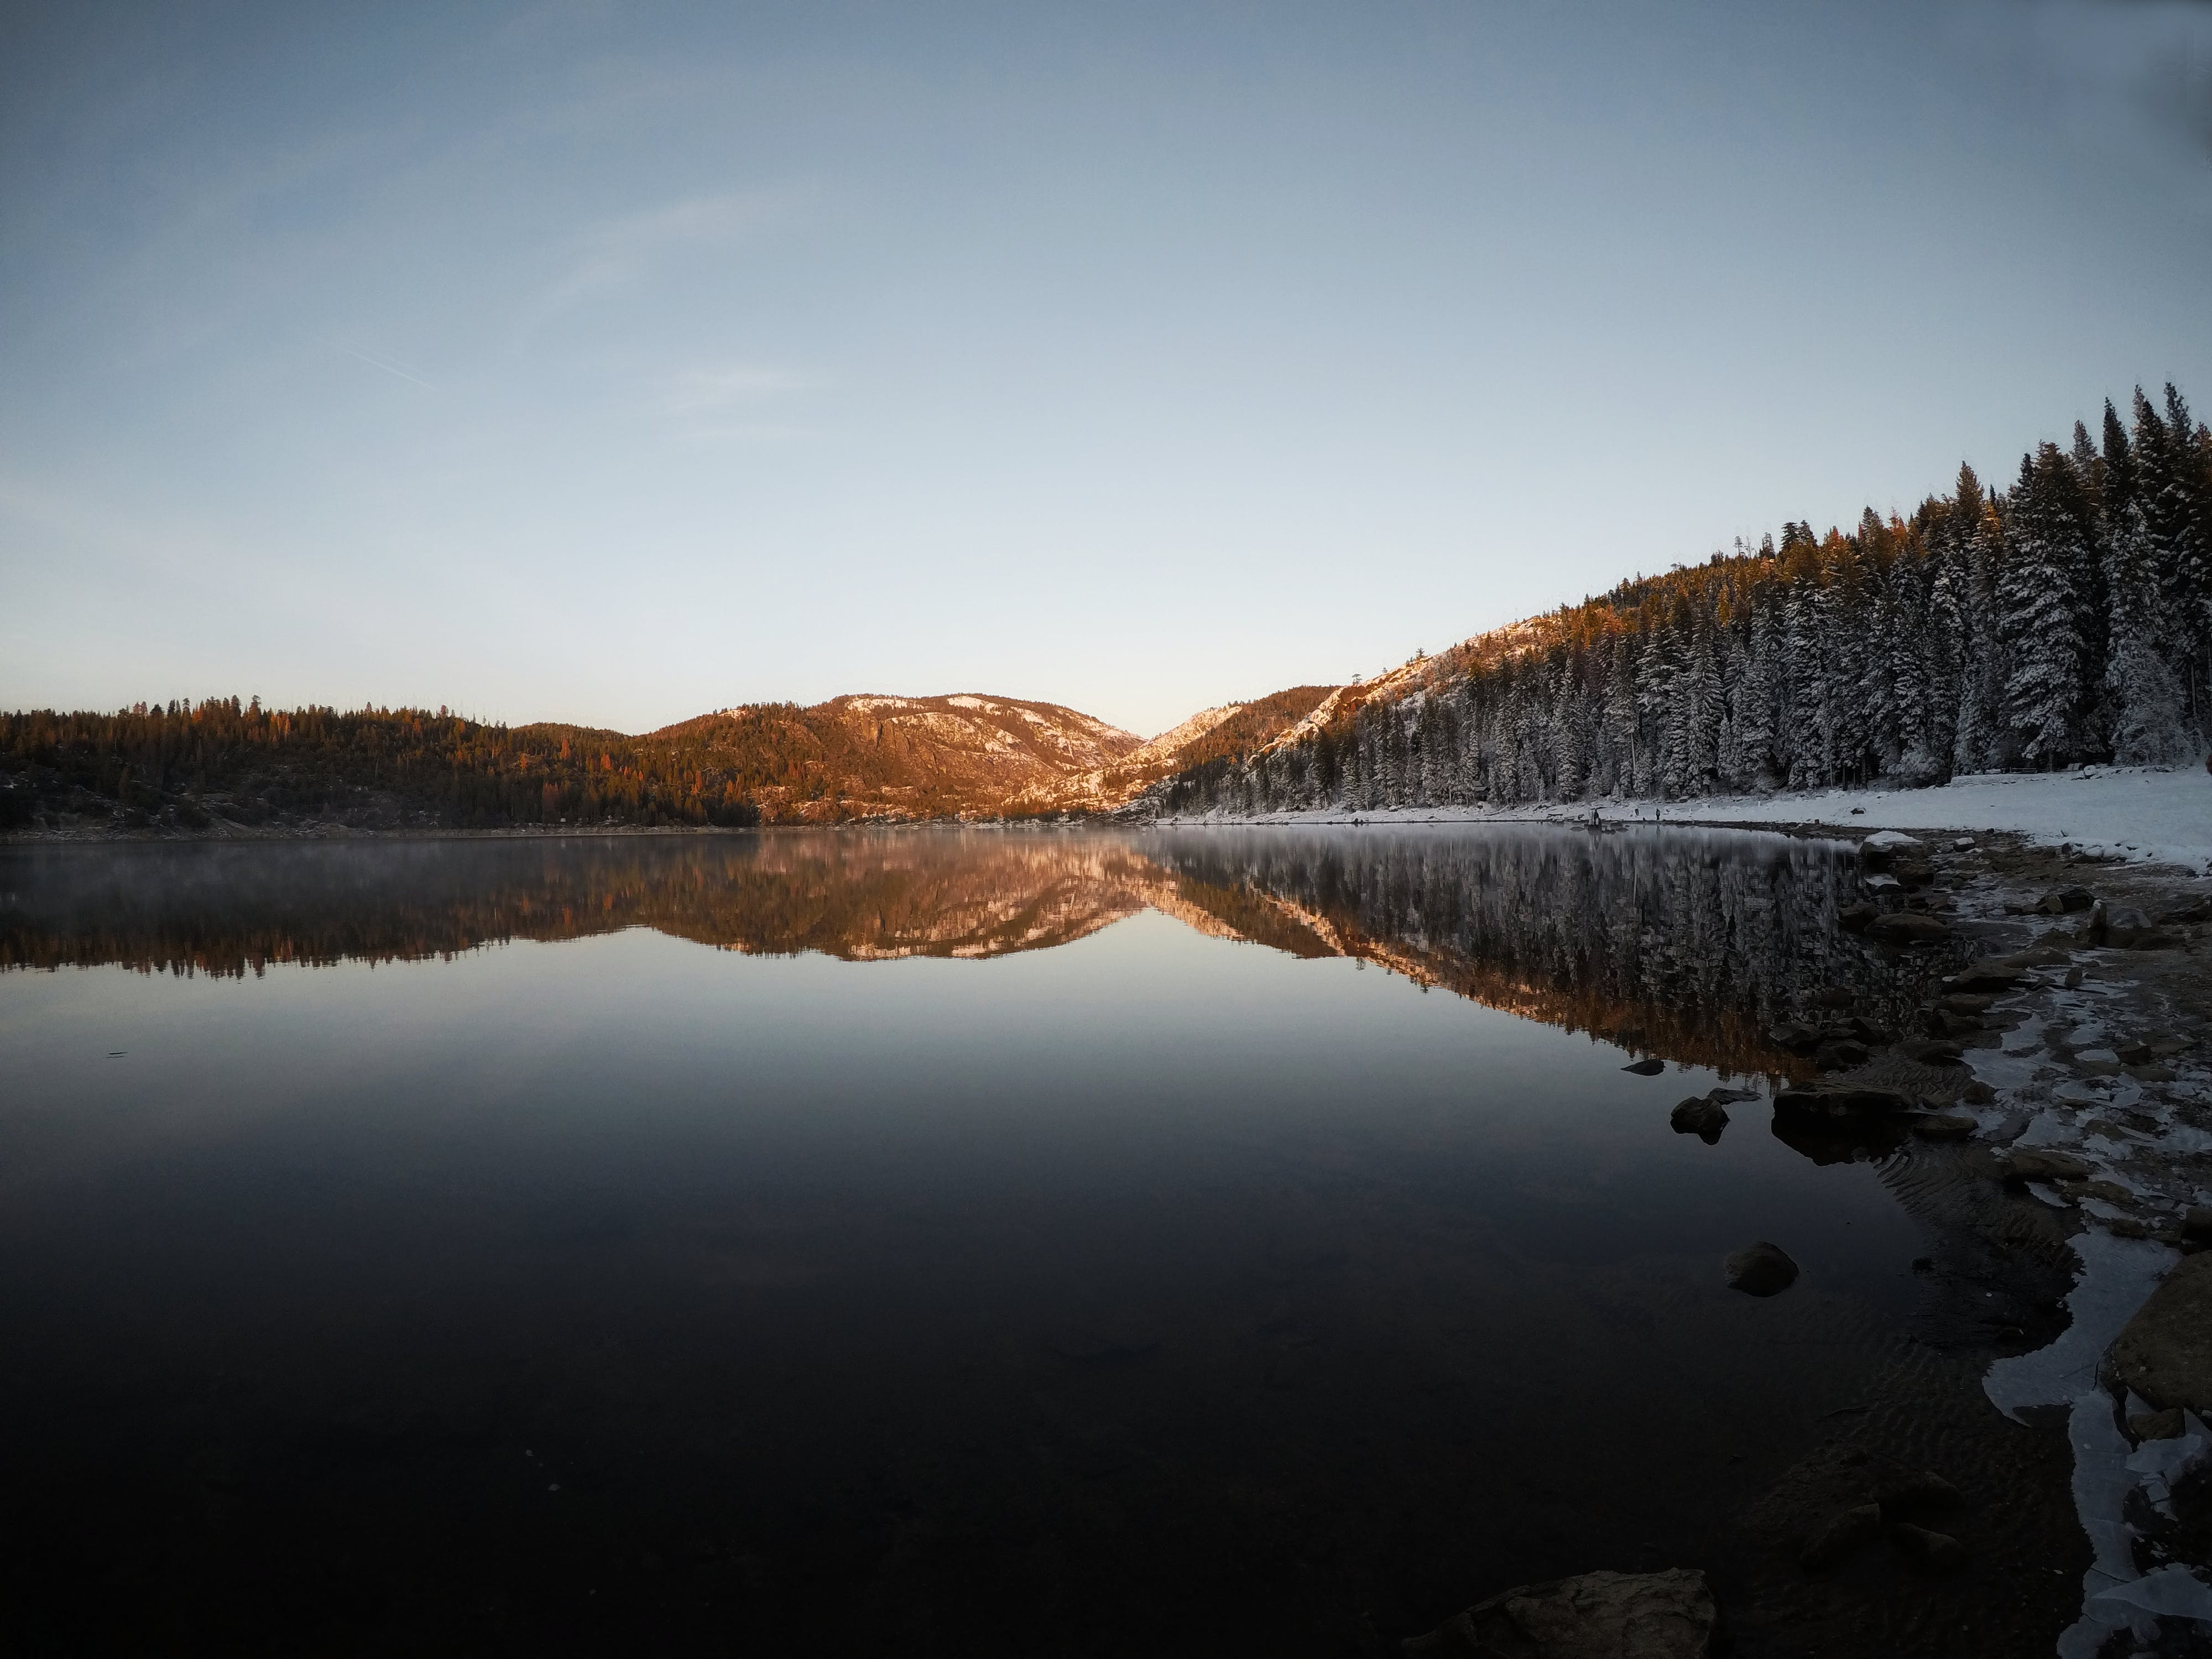 Reflection of Mountain and Trees on Body of Water